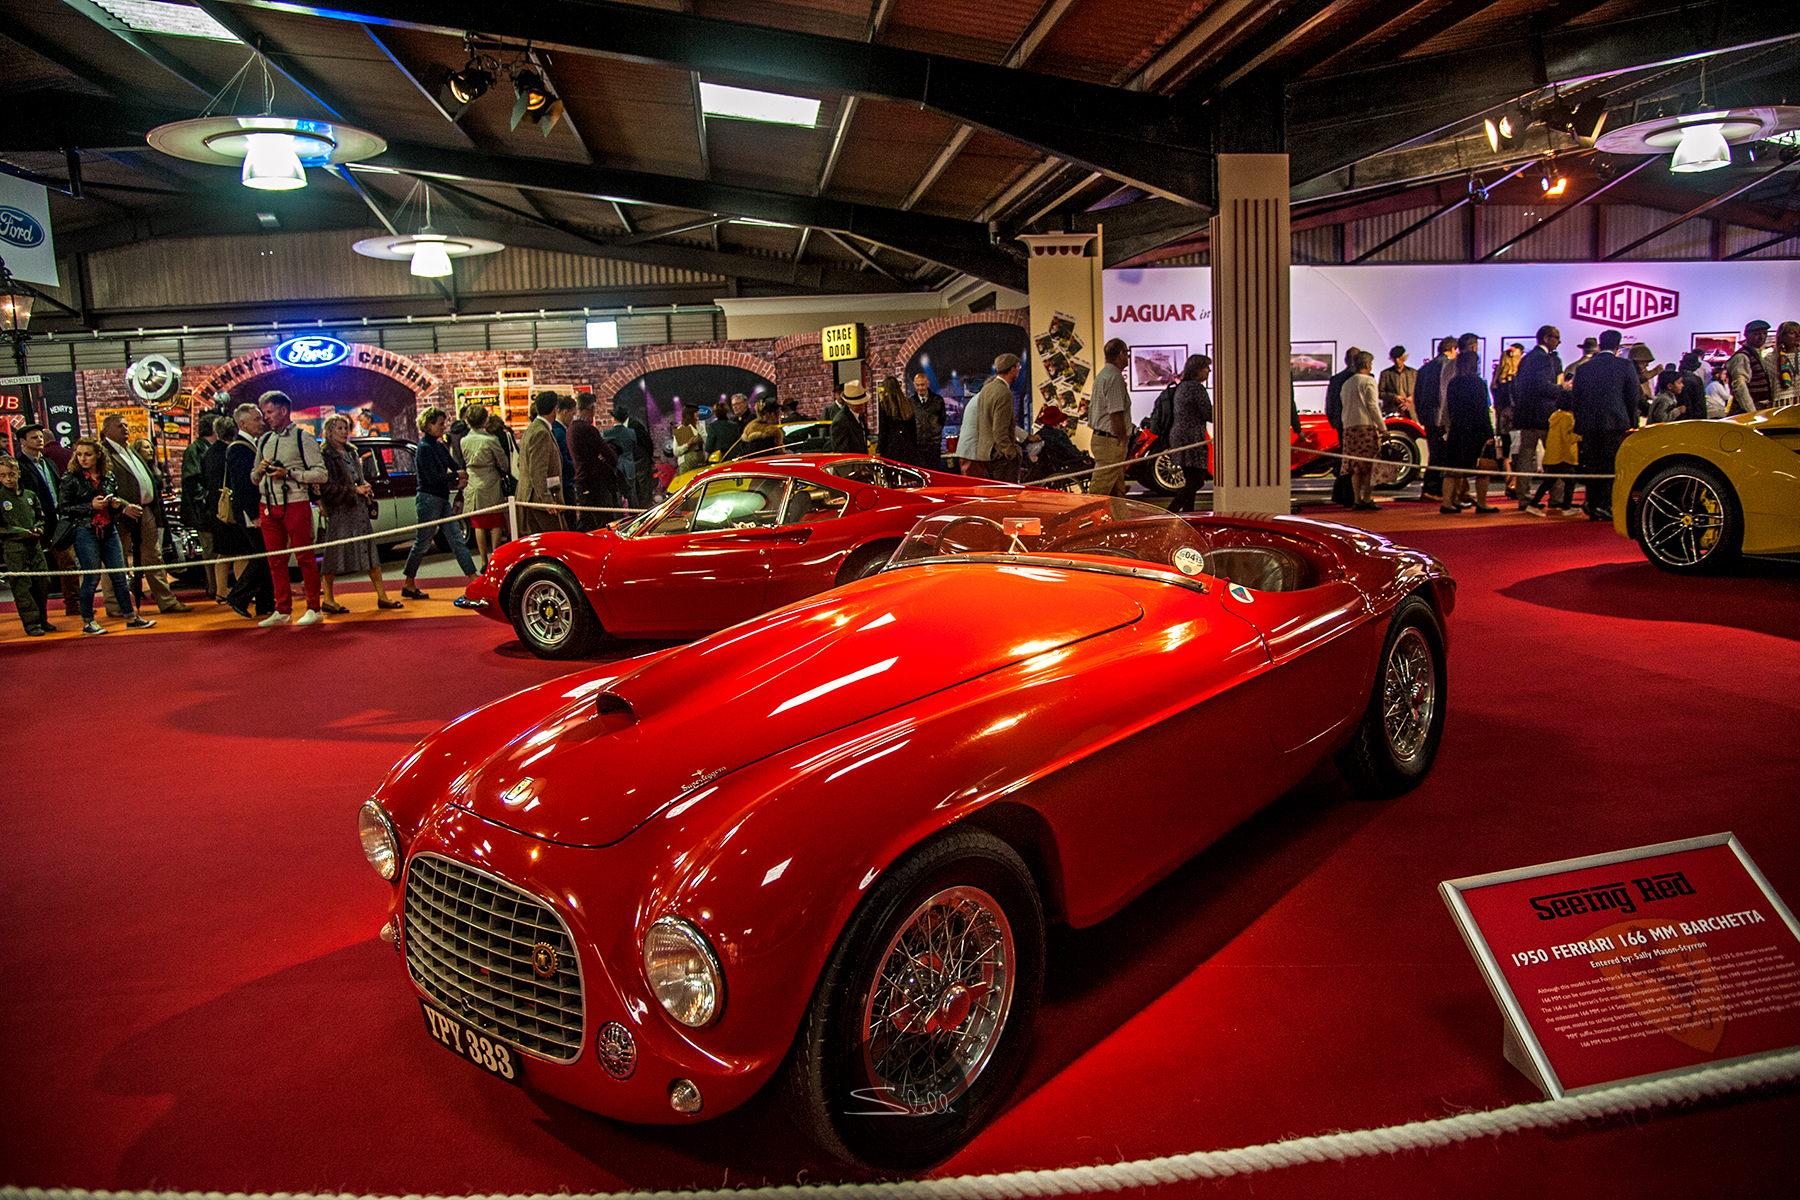 Stella Scordellis Goodwood Revival 2015 15 Watermarked.jpg